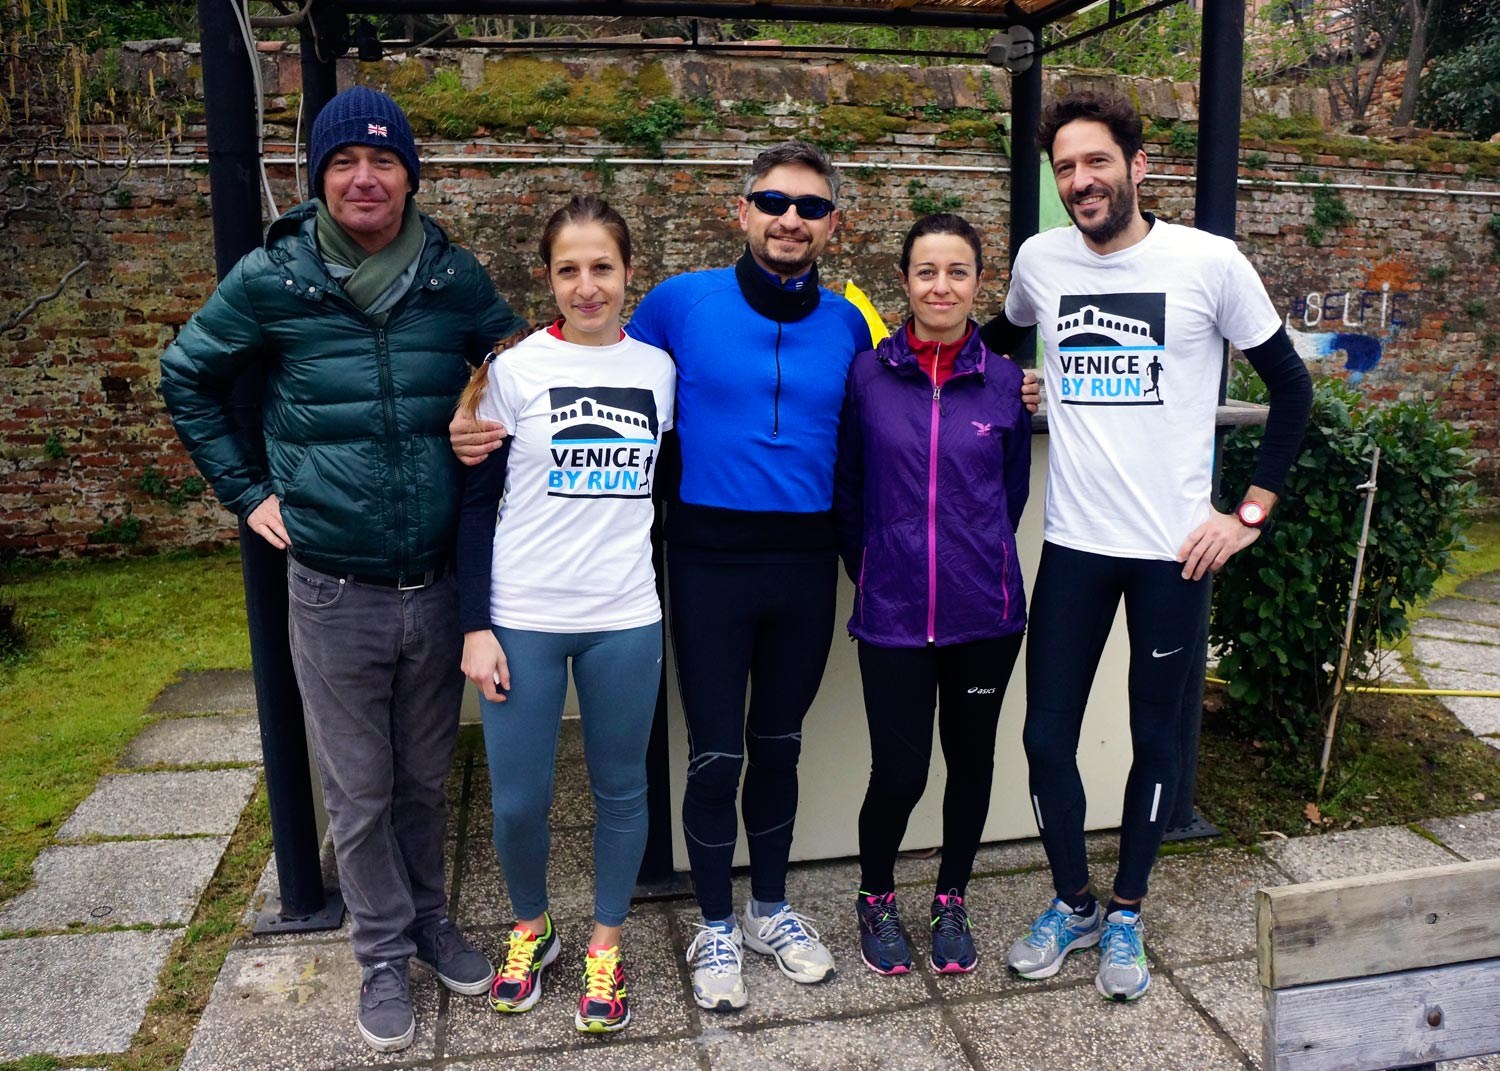 Runners and host in Cantieri Biasin in Venice